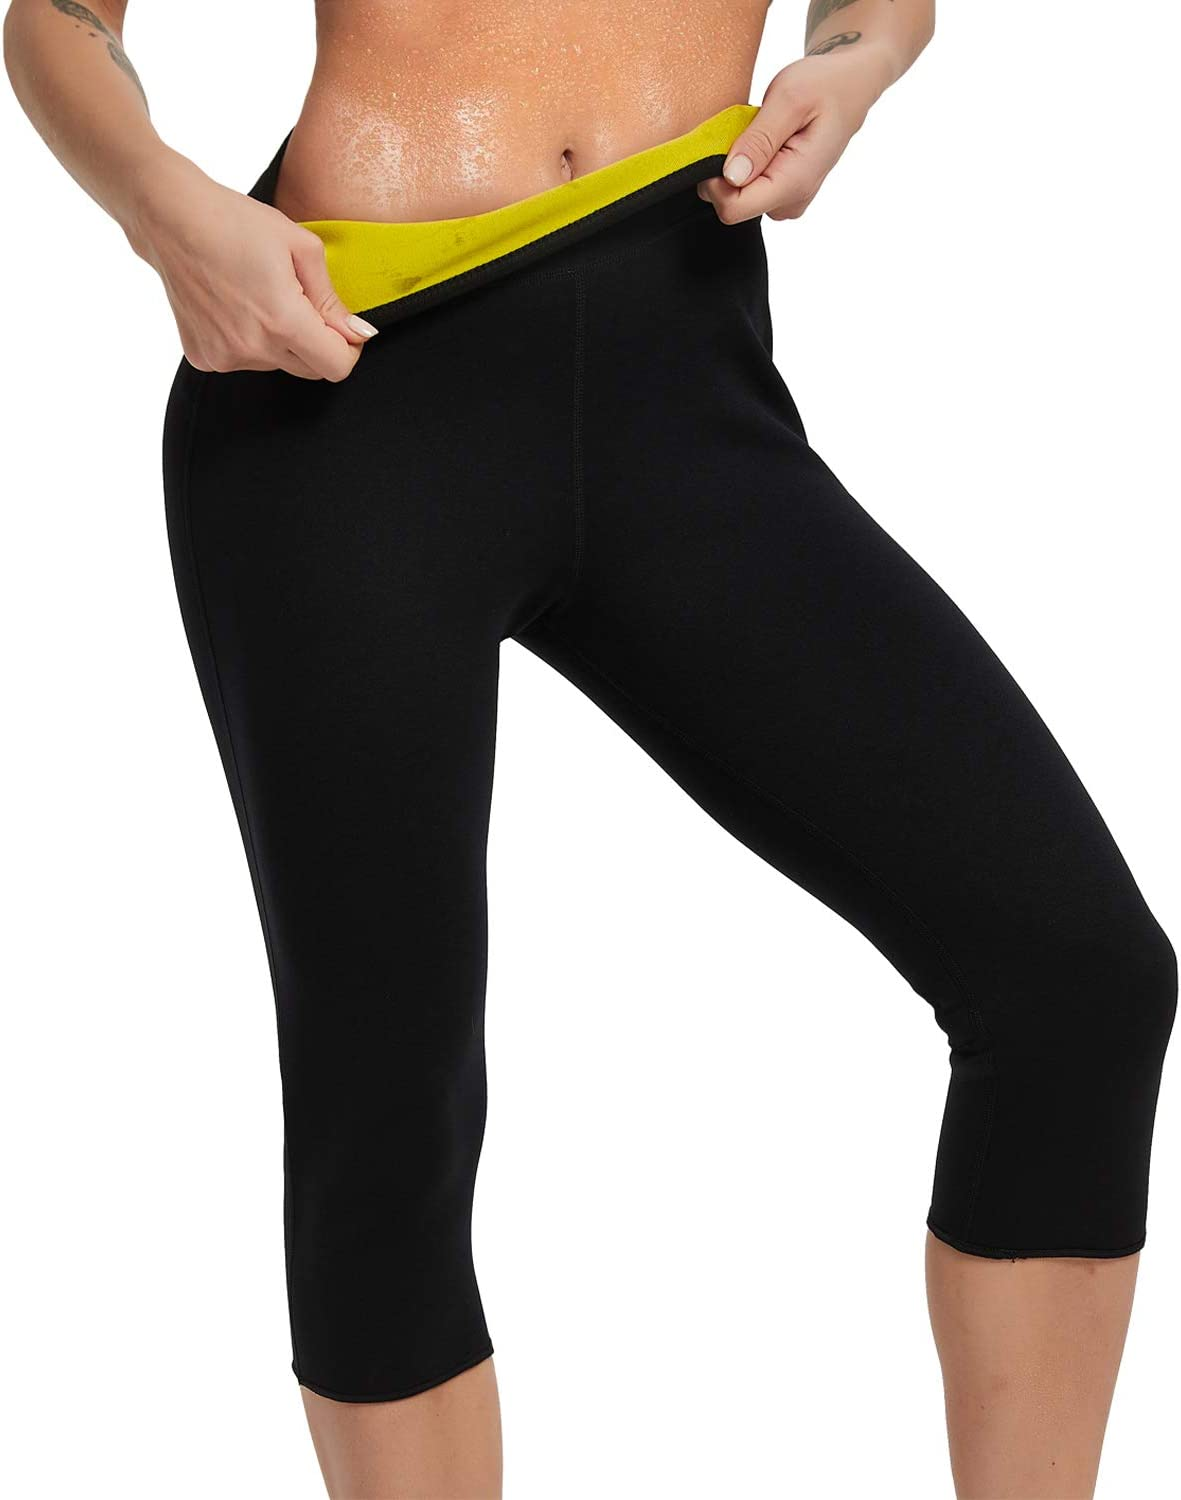 Hot Slimming Sauna Pants for Weight Loss 1pcs High Waist Hot Thermo Fat Burning Sweat Leggings with Side Pocket for Women Running Gym Yoga Exercise Tummy Control Women Sauna Sweat Pants Black